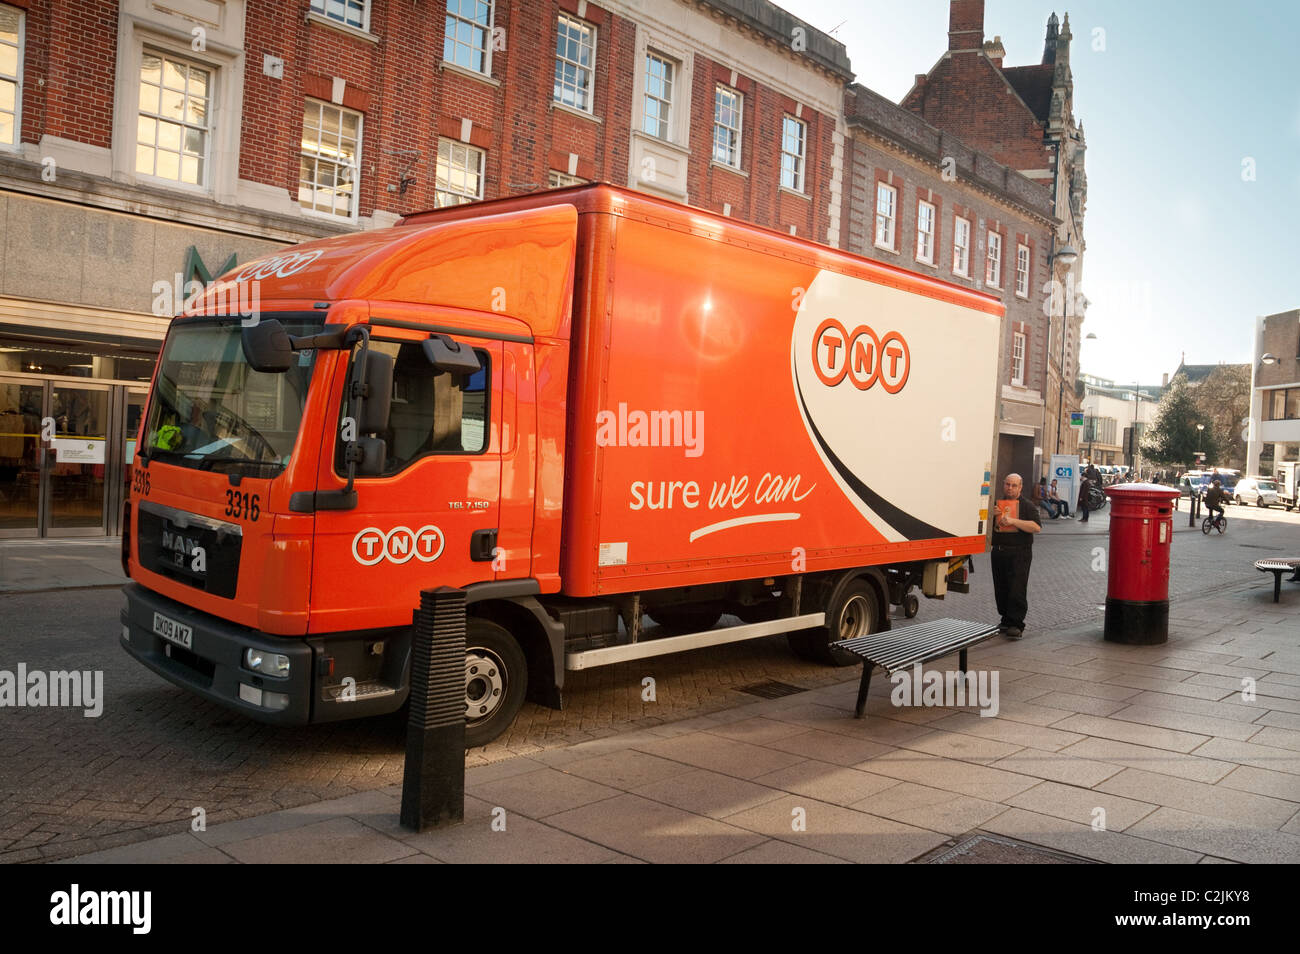 A TNT postman and his delivery truck at a postbox, Sidney Street Cambridge UK - Stock Image